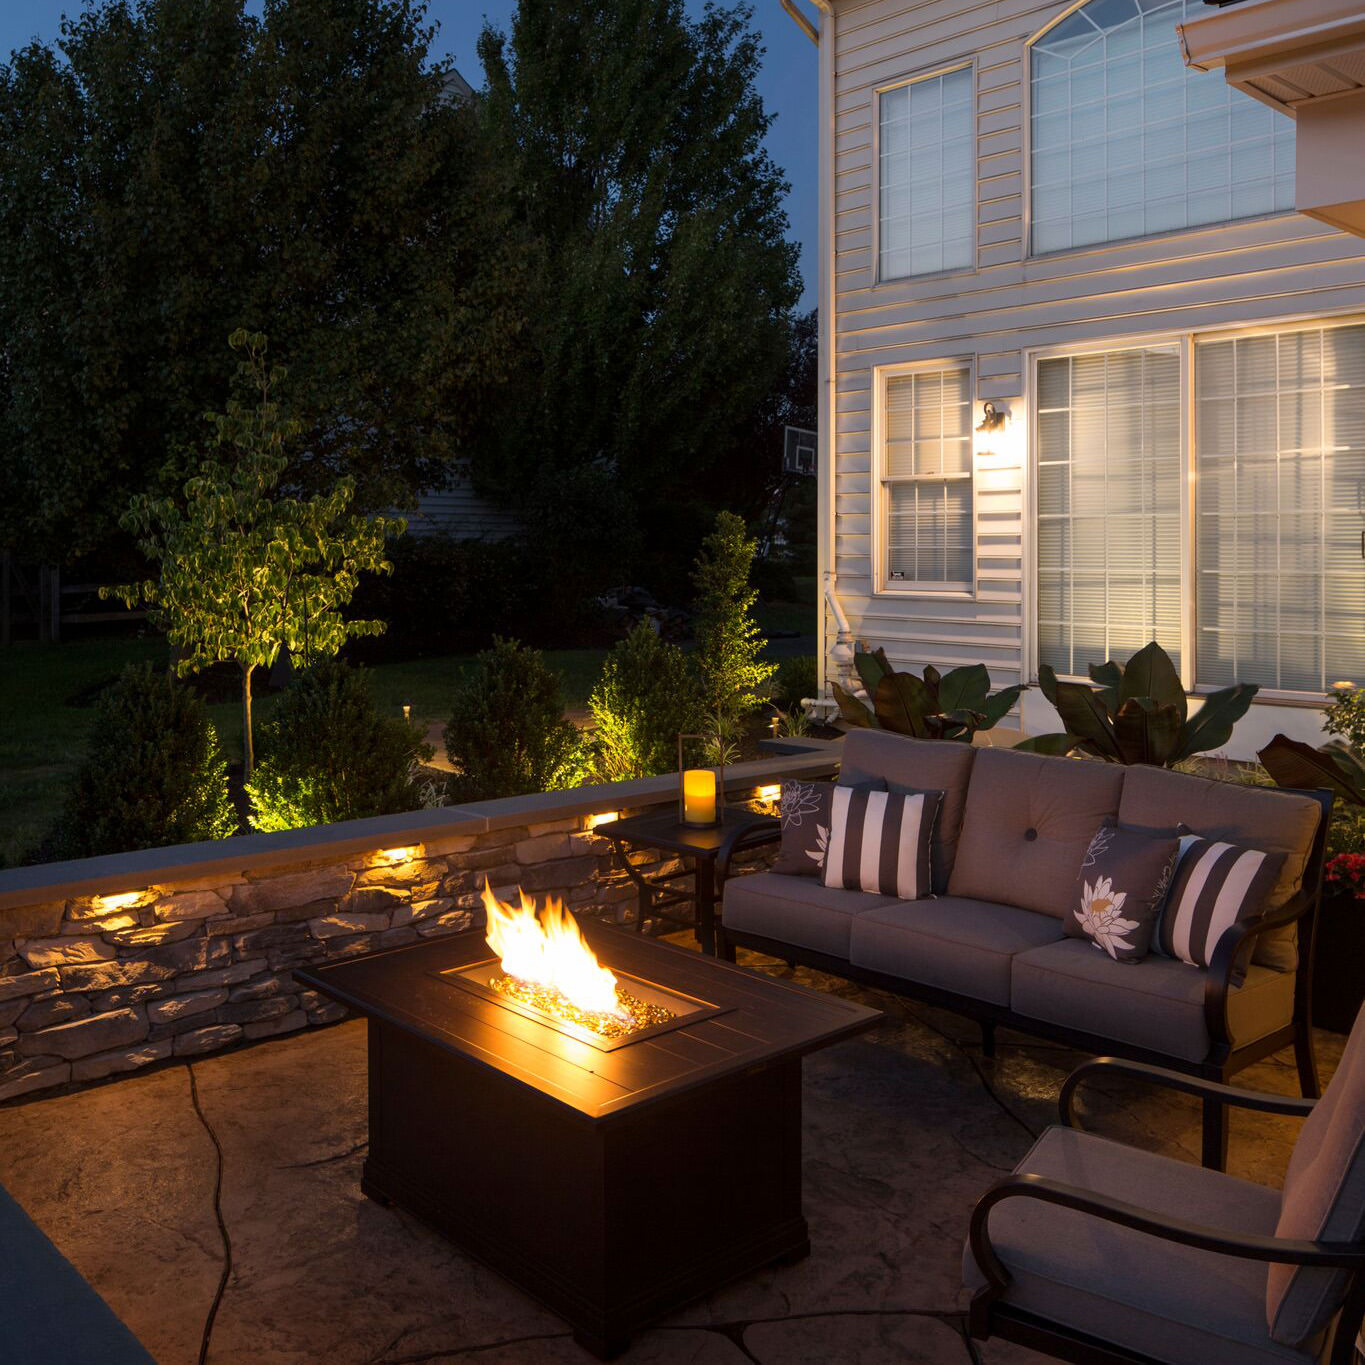 This Bethlehem family thoroughly enjoys their designated cozy patio lounge space. Learn more behind the inspiration for this space…